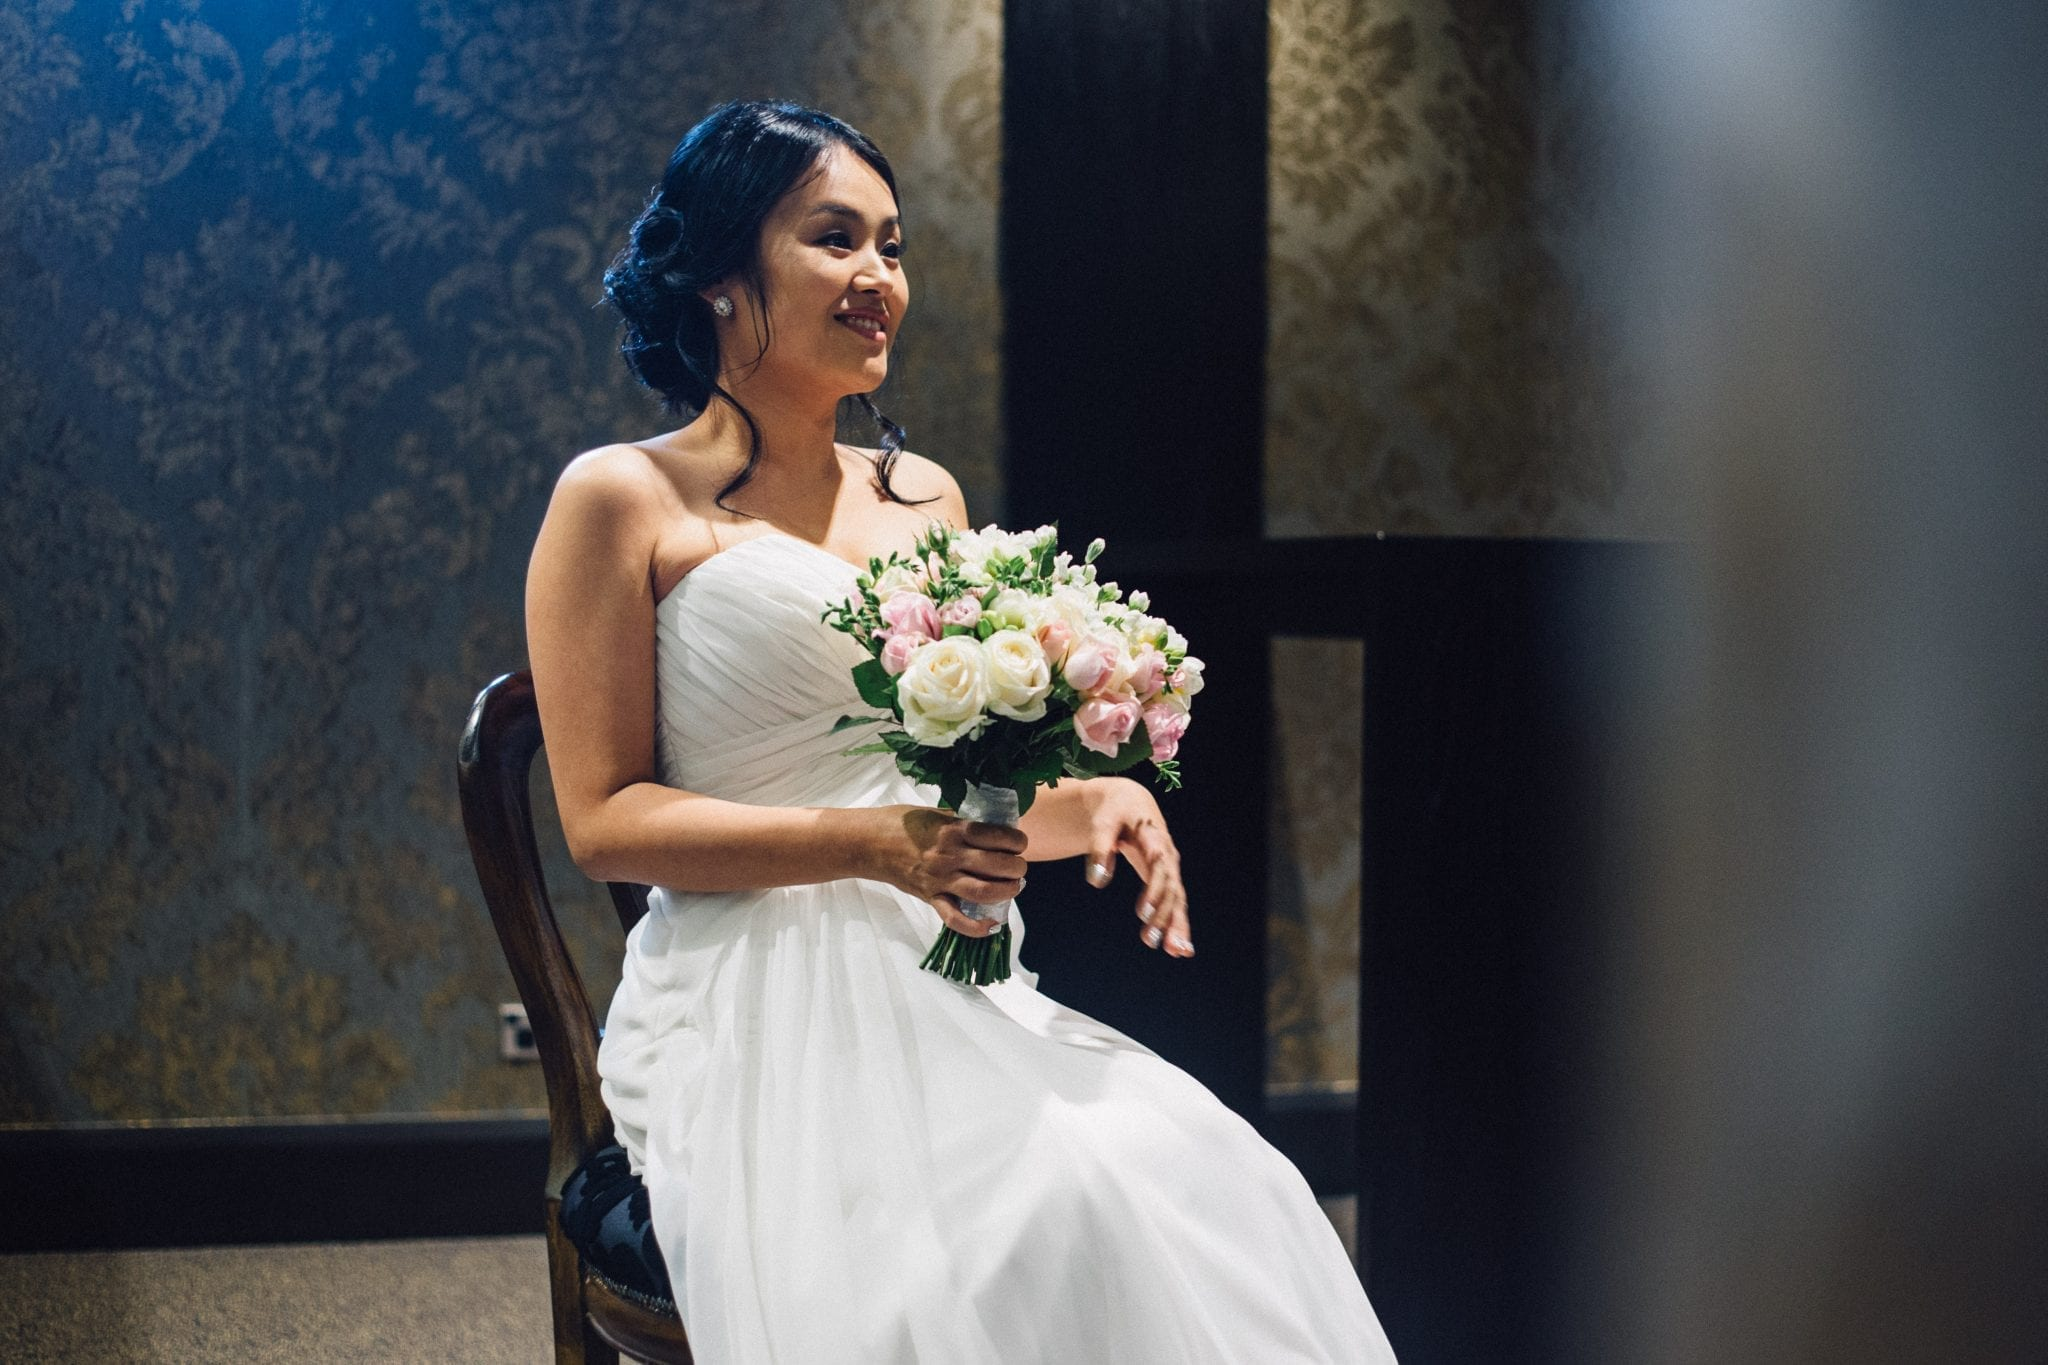 Kim Chan Events|Posy bouquet of pinks creams and whites for asian bride in New Zealand